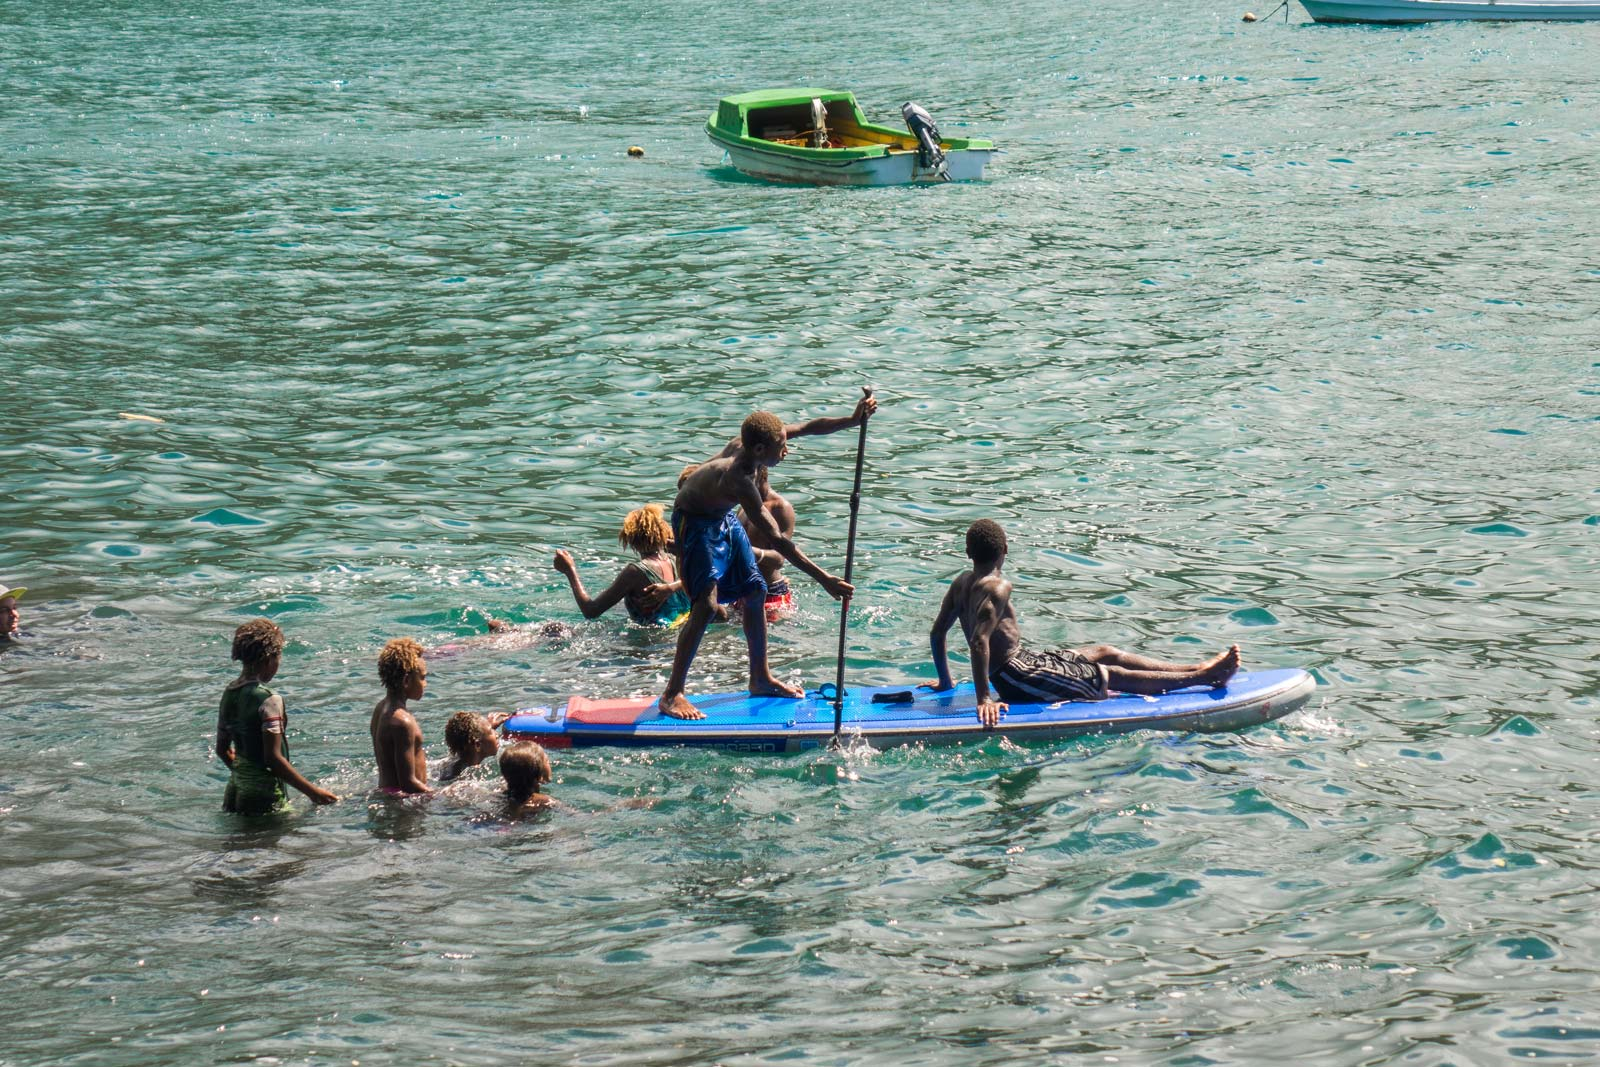 Starboard-SUP-Bart-de-Zwart-Trevor-Tunnington-Explore-the-Islands-of-Vanuatu-by-Stand-Up-Paddleboard-kids-on-sup